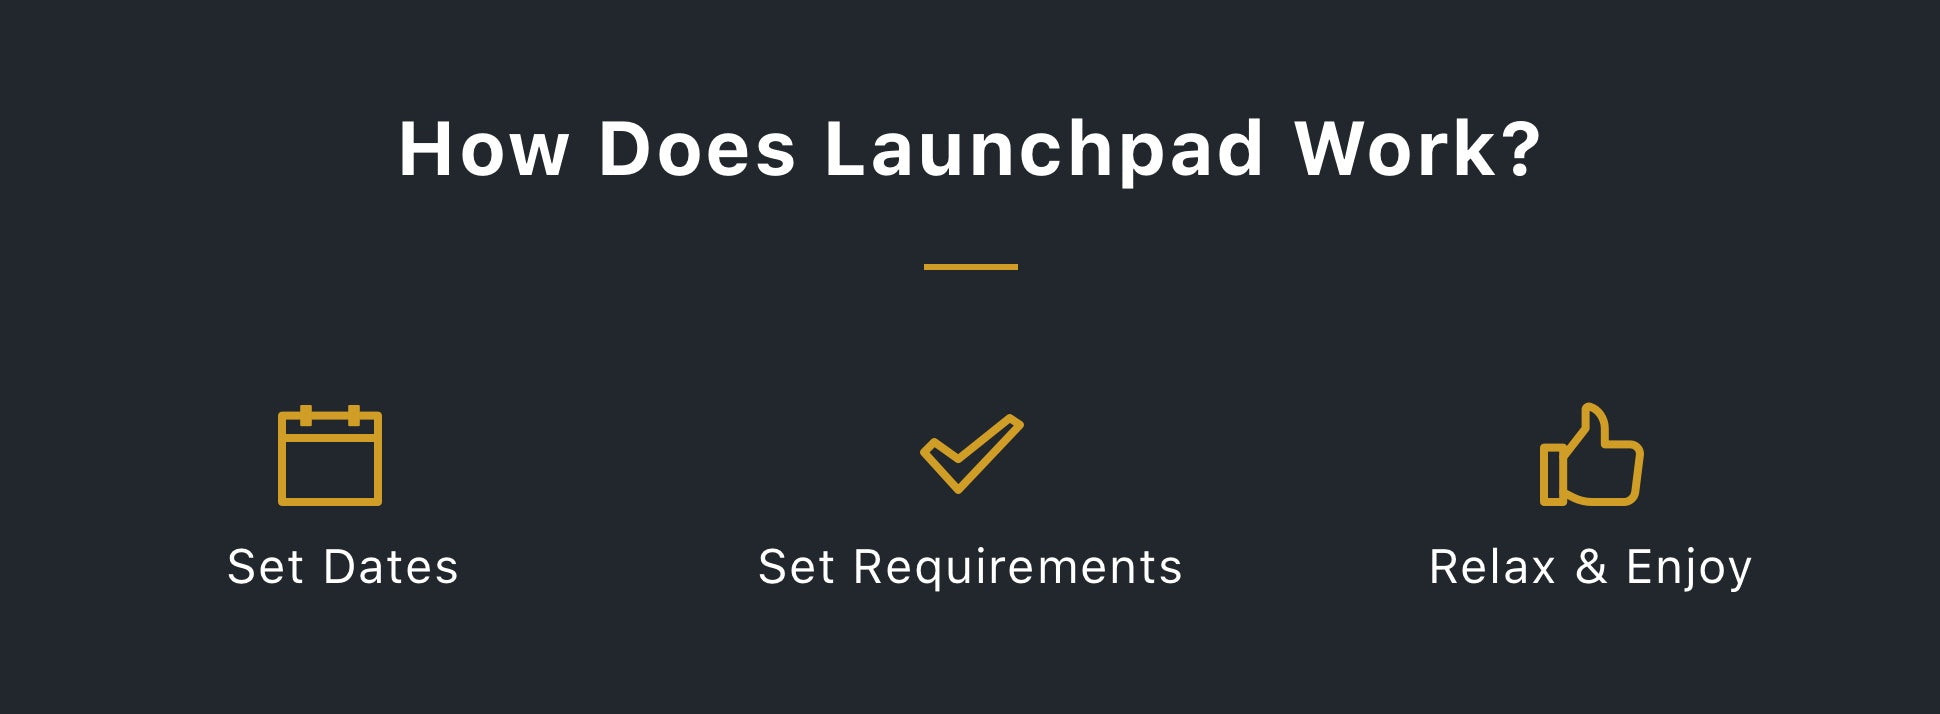 How Does Launchpad Work?